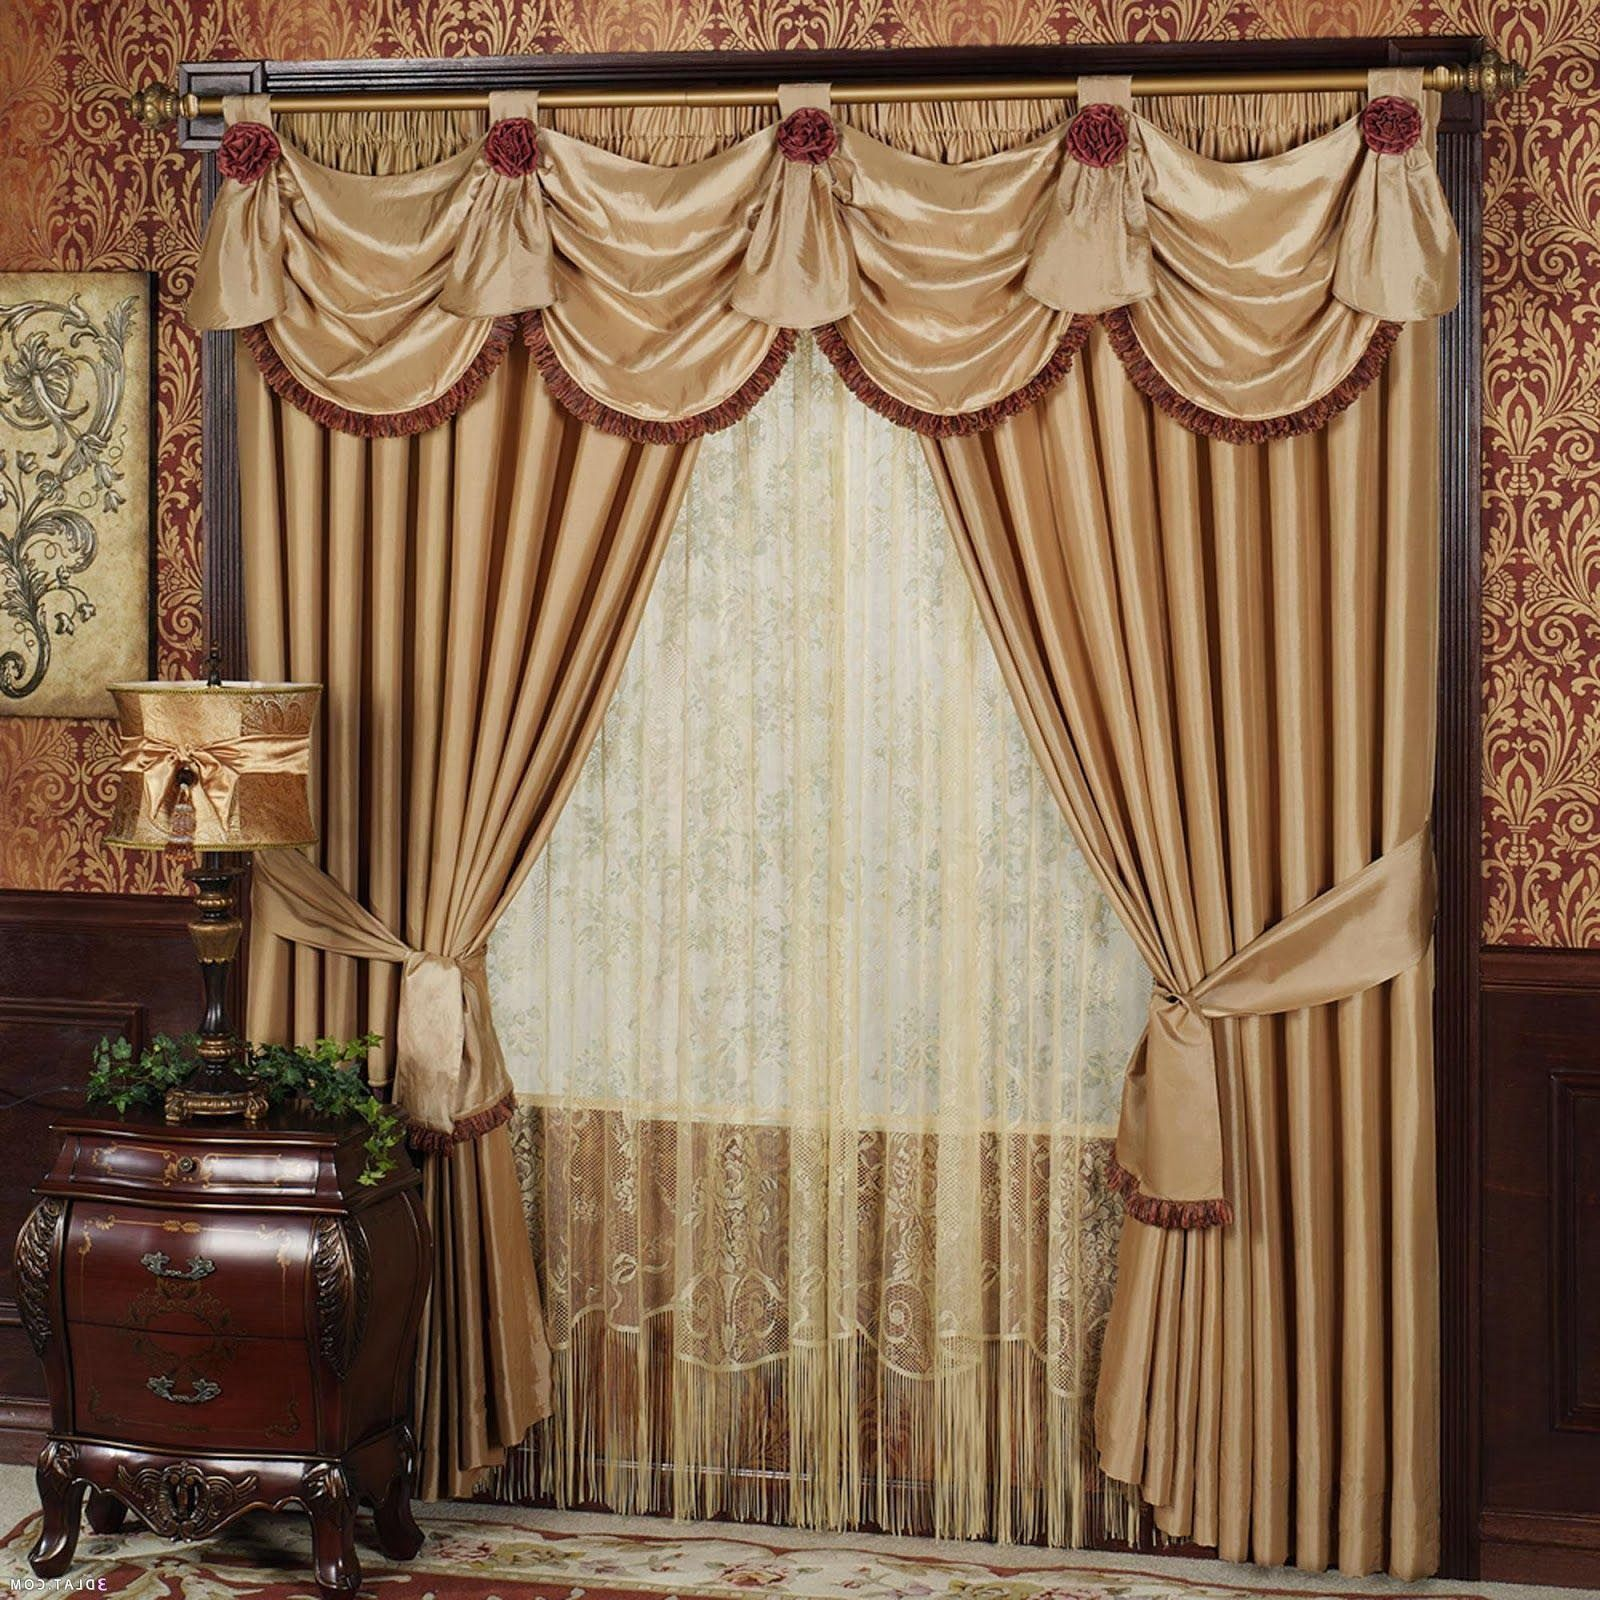 marvellous for dining valance room valances of curtain modern living treatment lovely ideas formal window